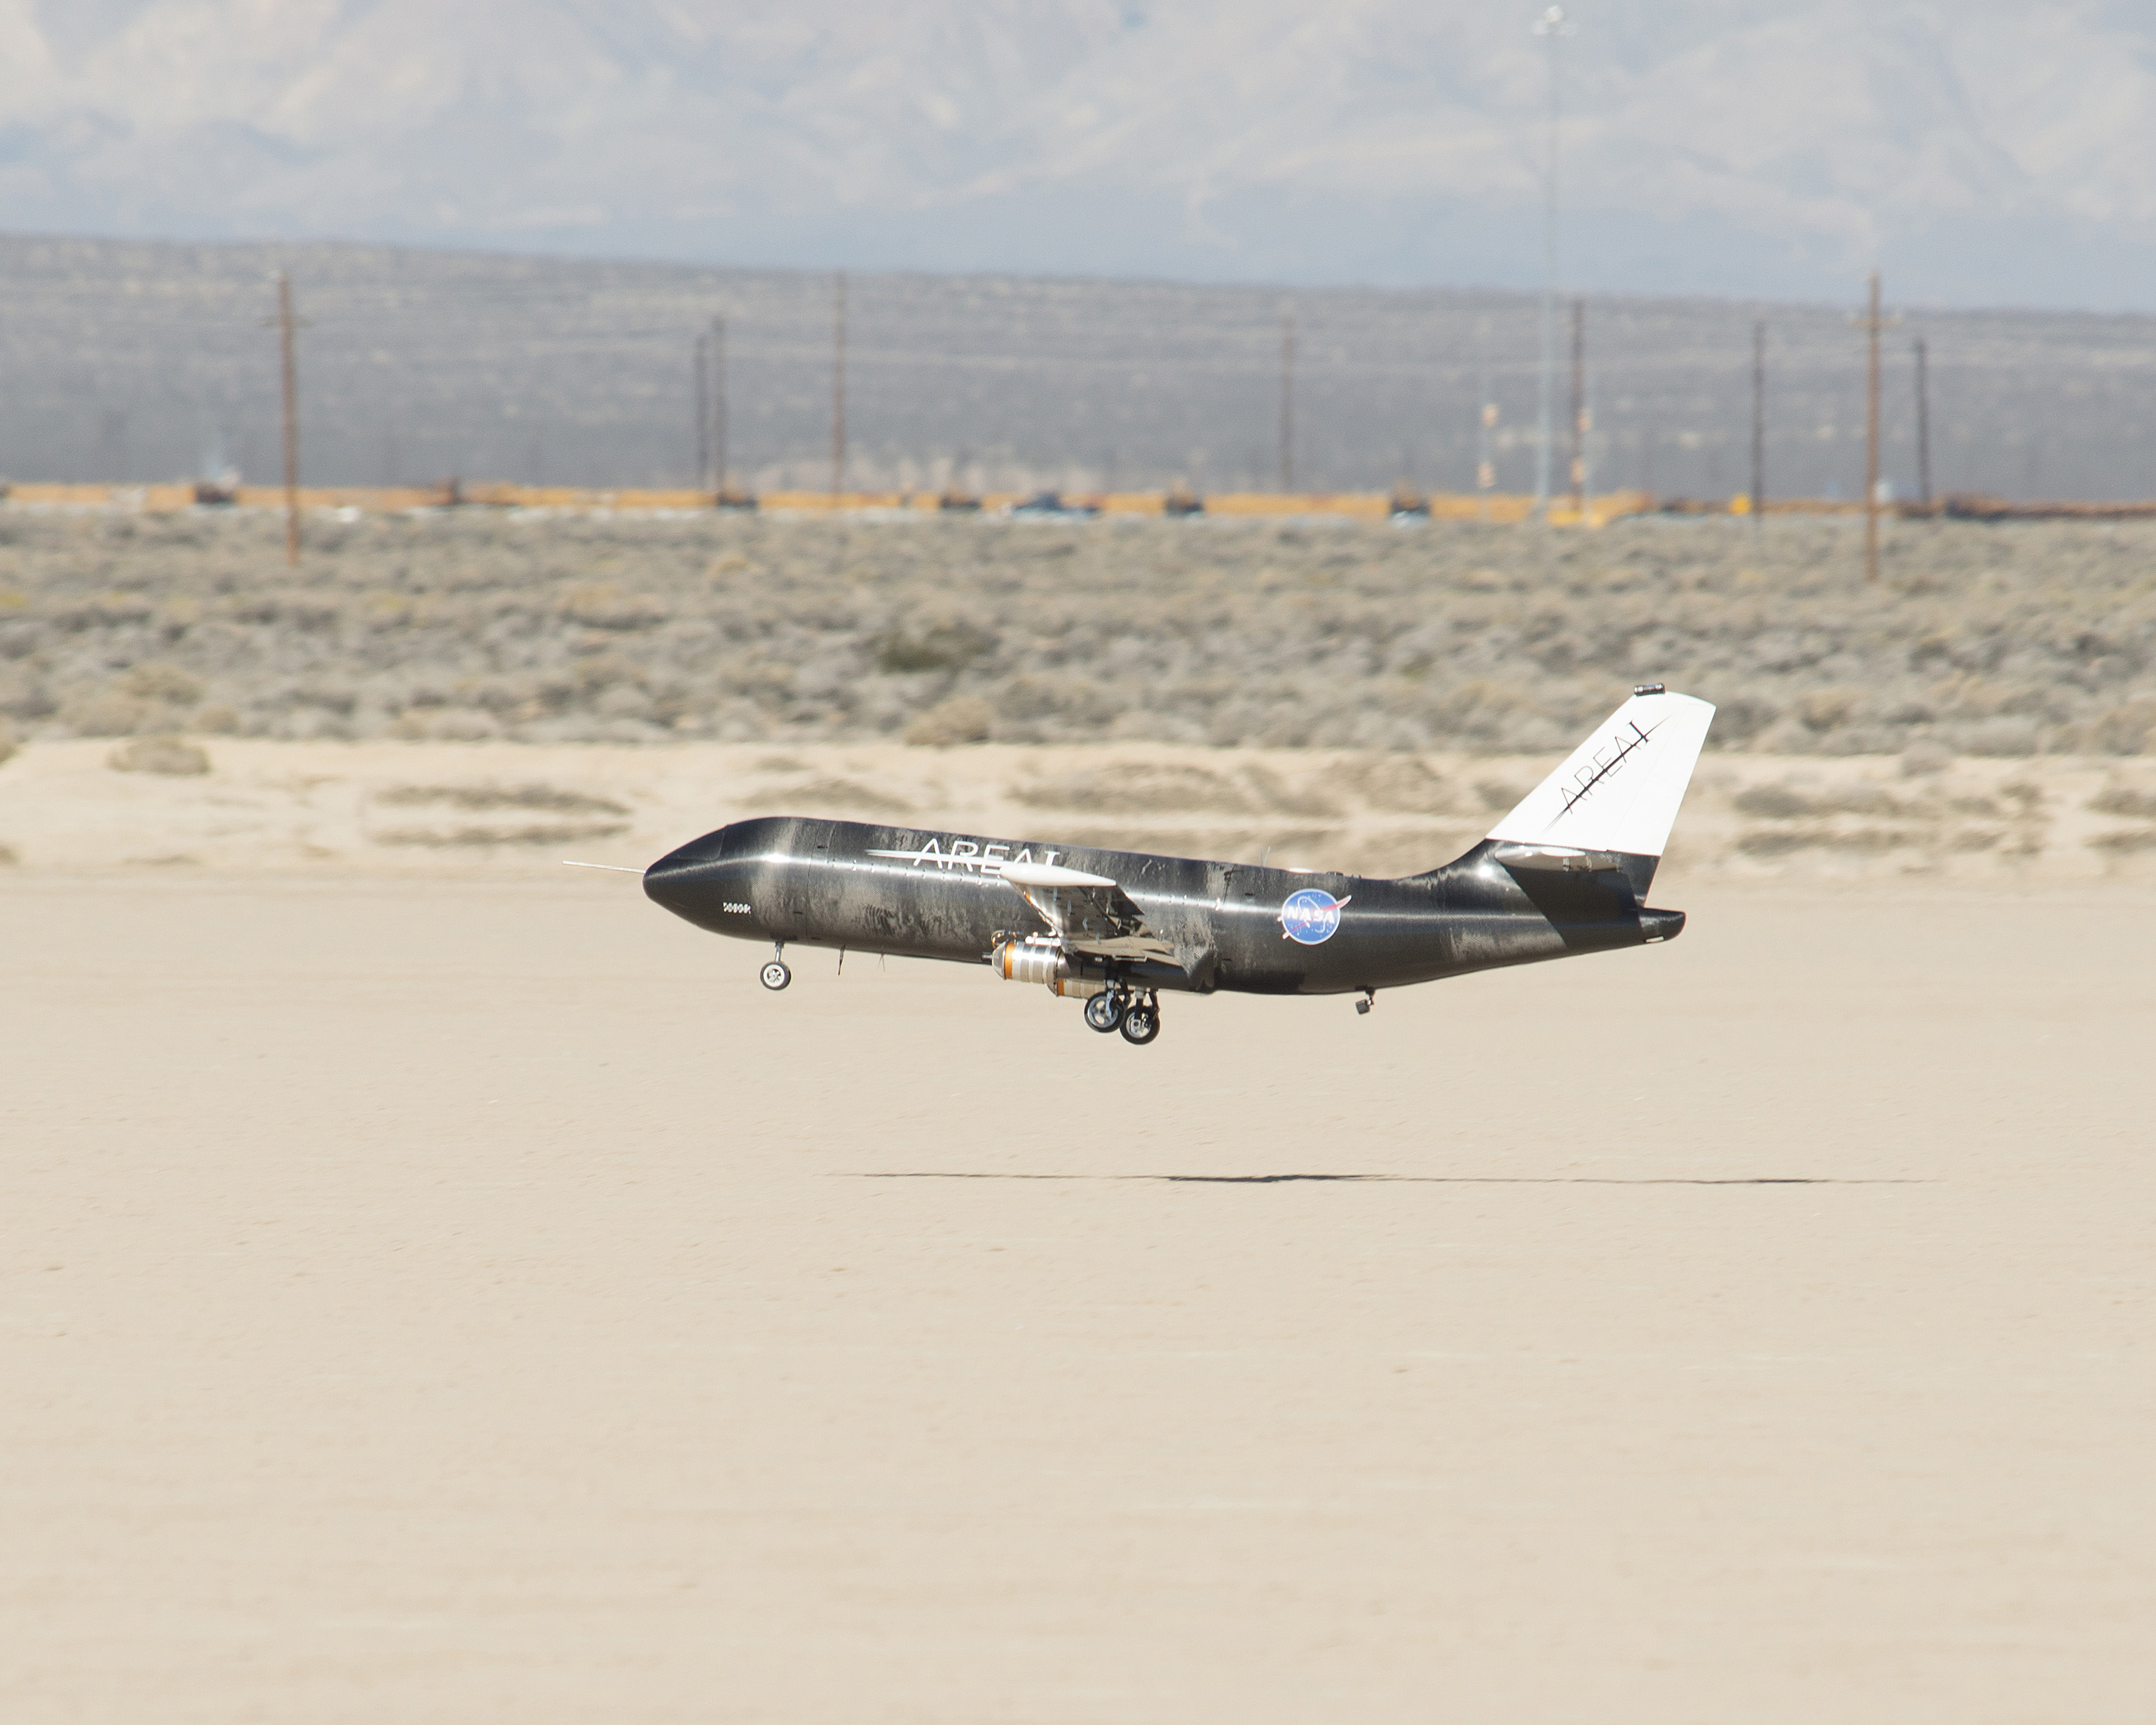 Aeronautics · NASA Armstrongu0027s PTERA Remotely Piloted Research Aircraft  Made Its First Flight On October 22, 2015  How Would You Weigh A Plane Without Scales